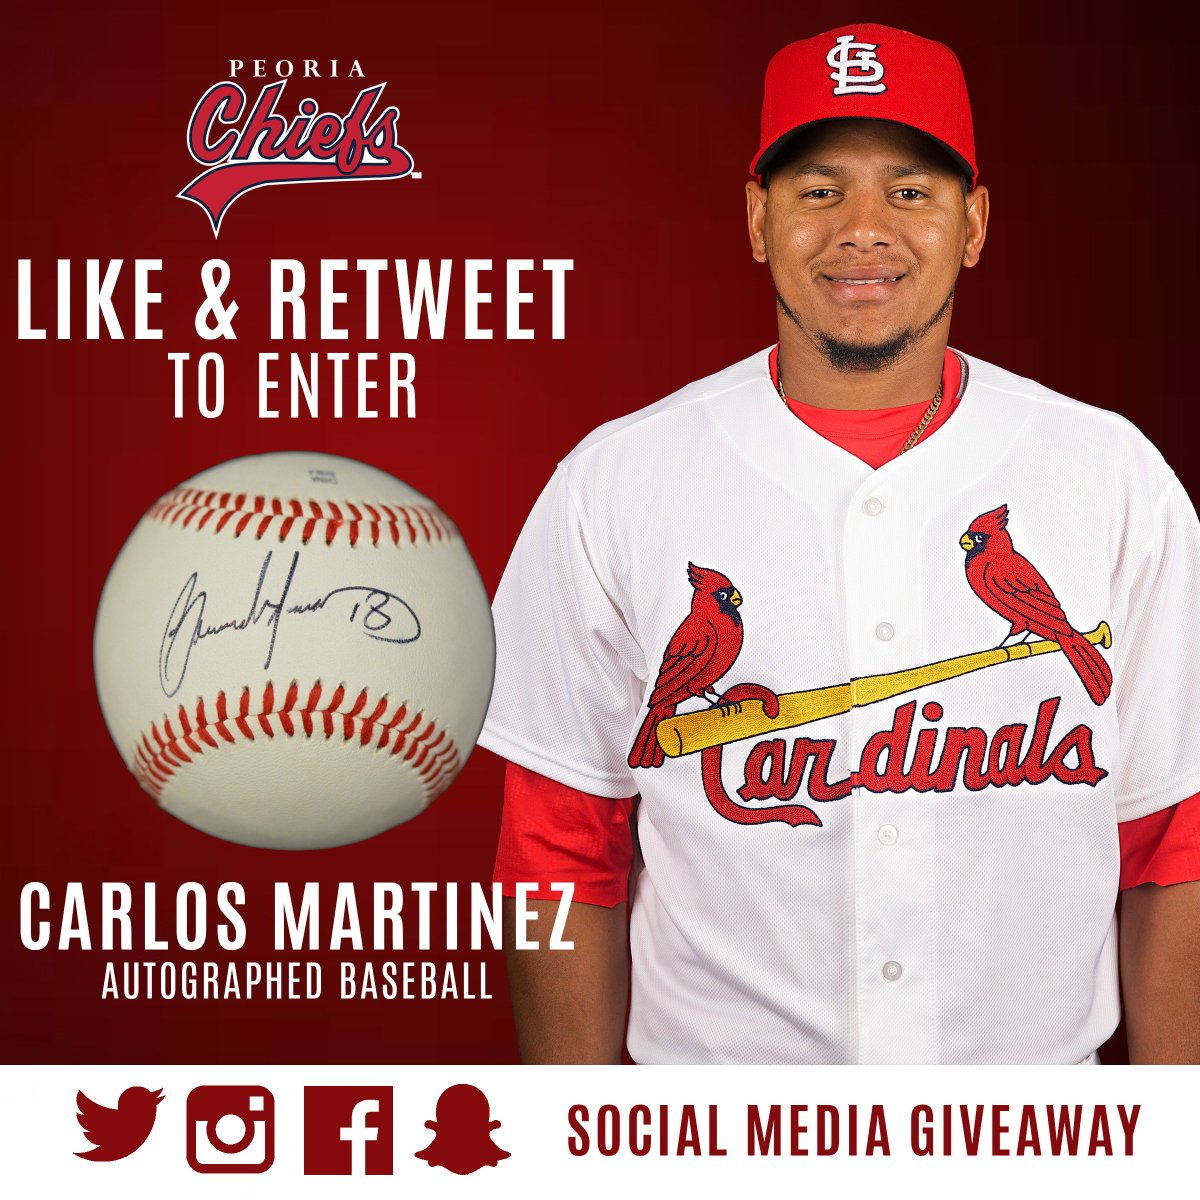 Follow us as the season approaches. Like & retweet for a chance to win a Carlos Martinez autographed baseball. https://t.co/ZY5YrIQval